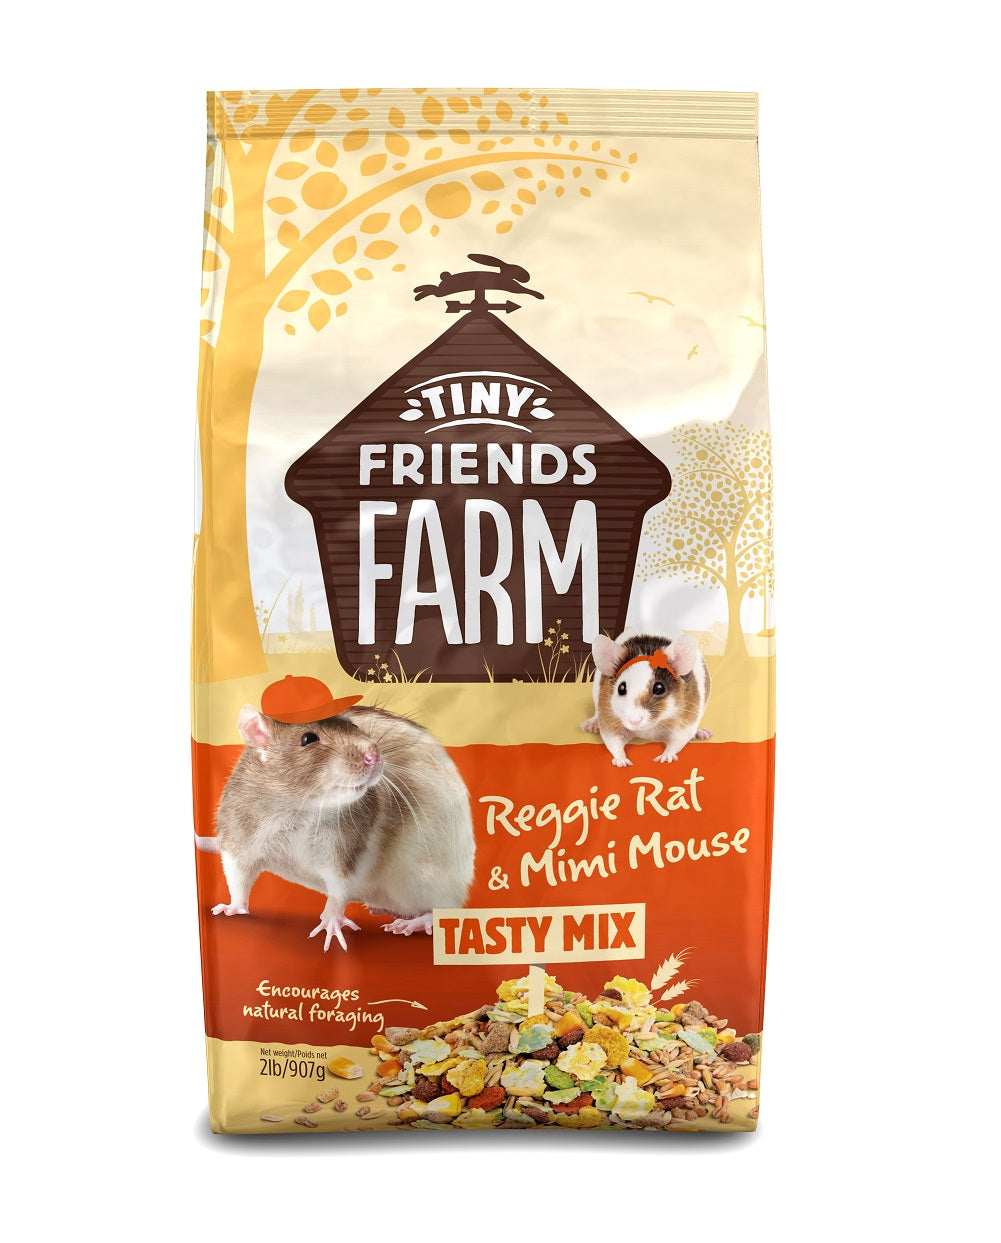 Supreme Pet Reggie Rat & Mimi Mouse Food 2lb